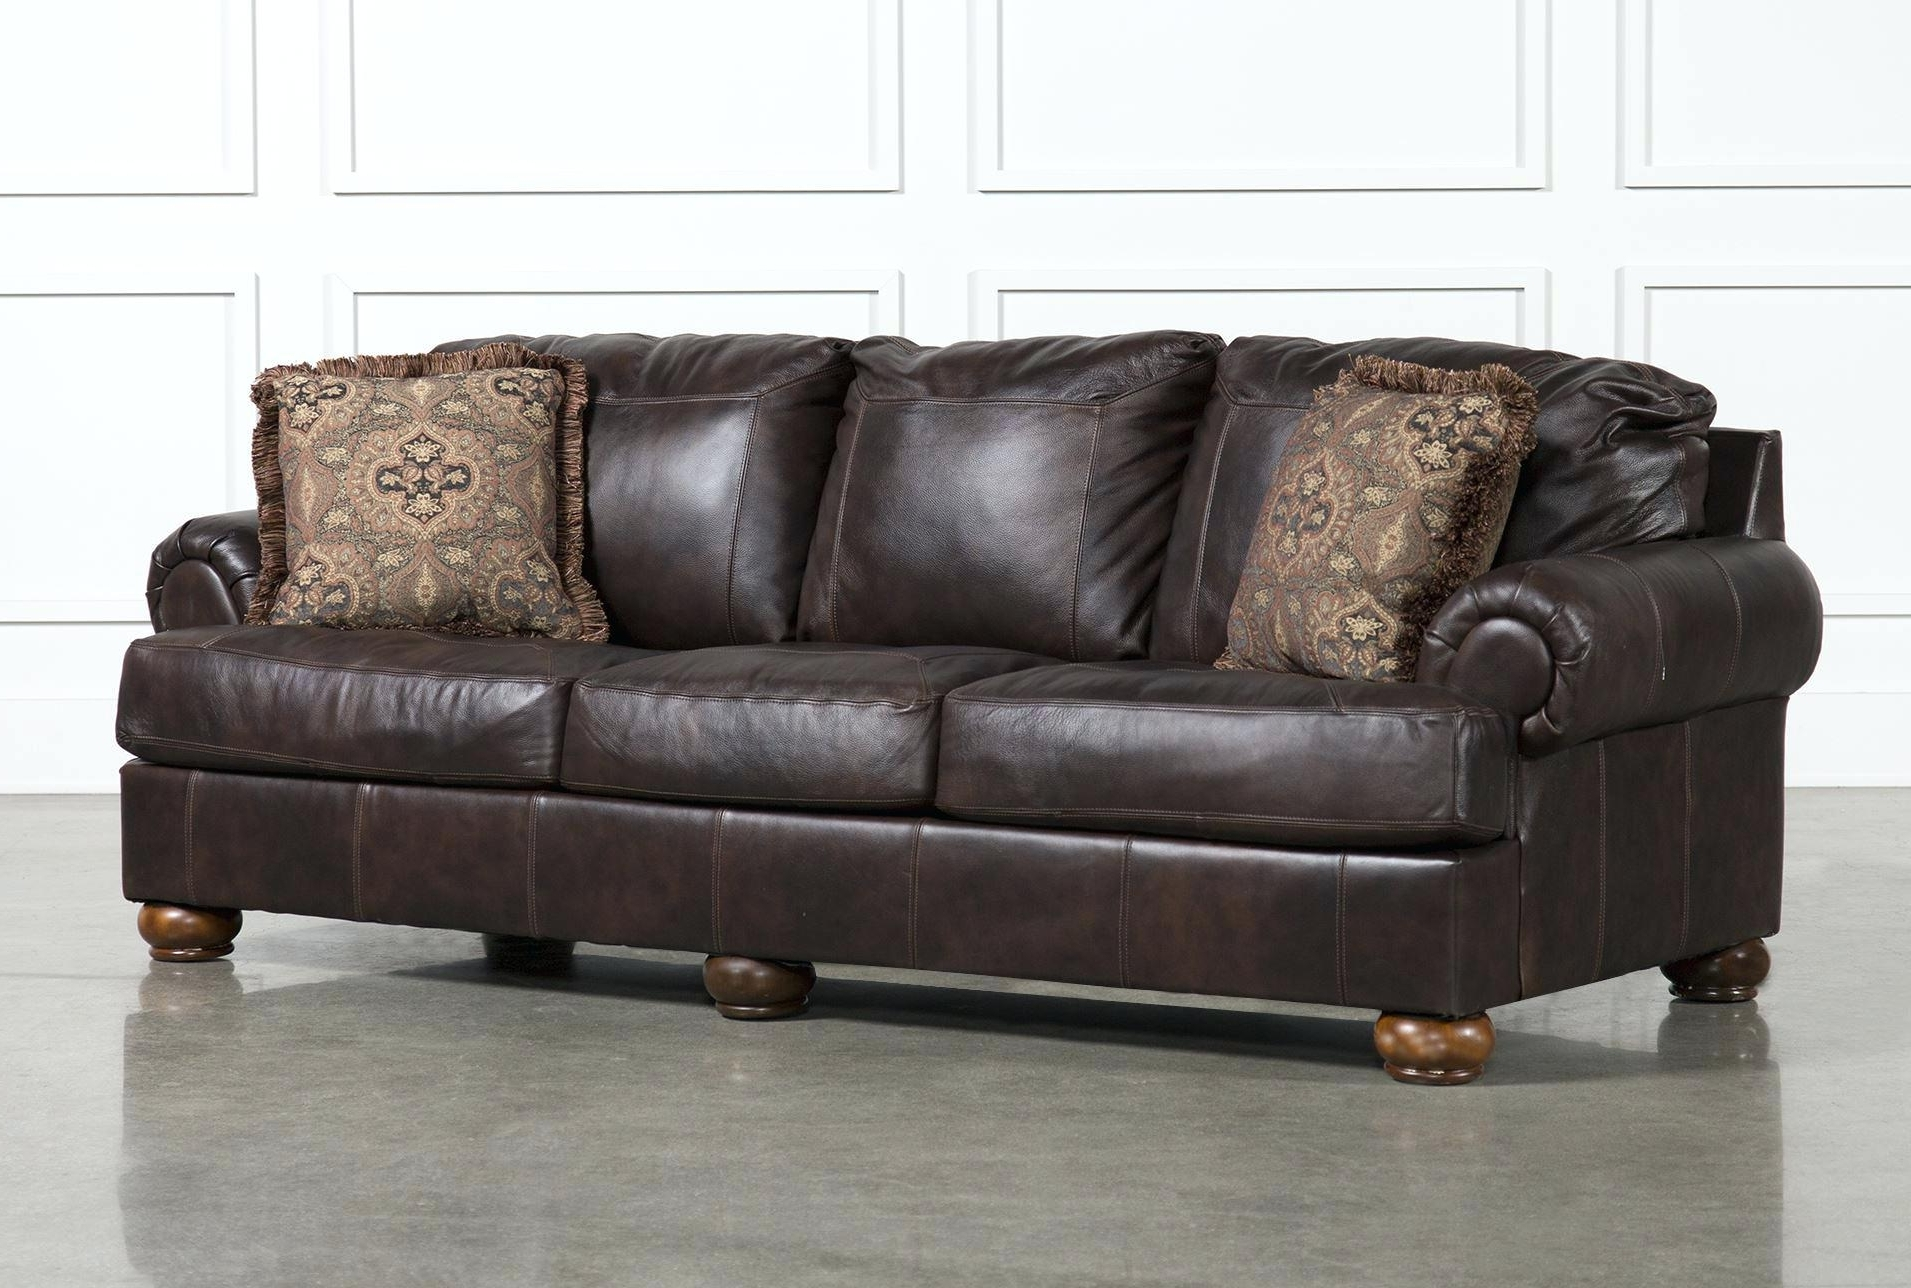 Widely Used Vancouver Bc Sectional Sofas For Leather Sectionals For Sale Sectional Sofas Canada Sofa Toronto (View 11 of 15)